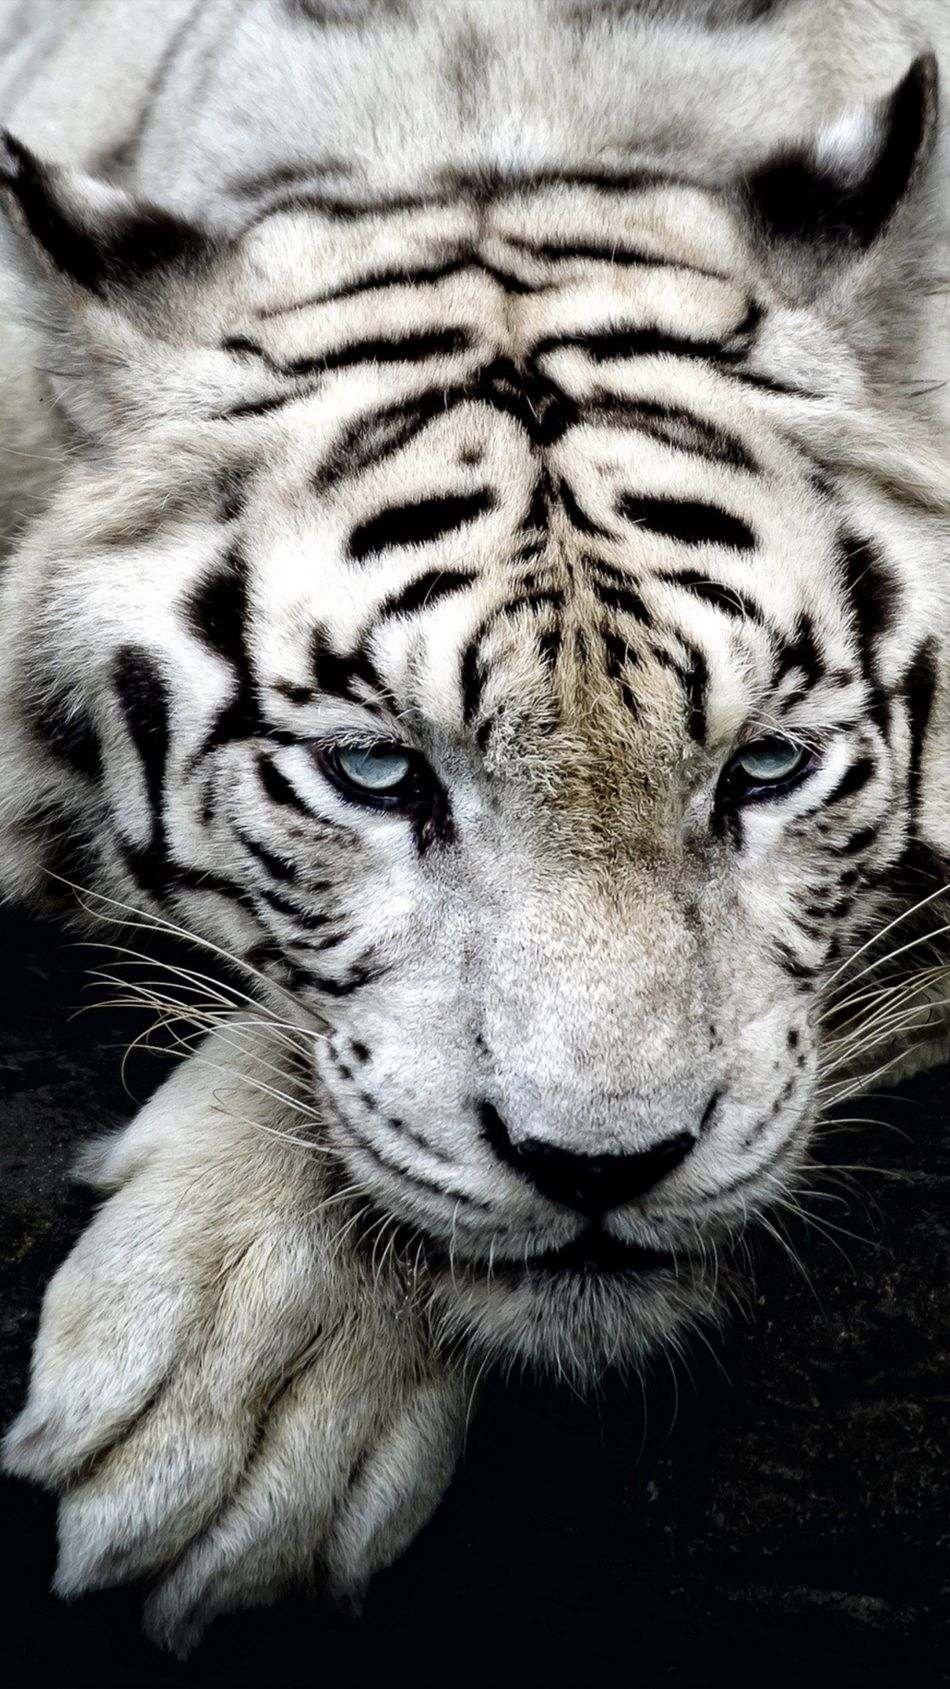 White Tiger Wildlife Wild Animal Wallpaper Pet Tiger Tiger Wallpaper